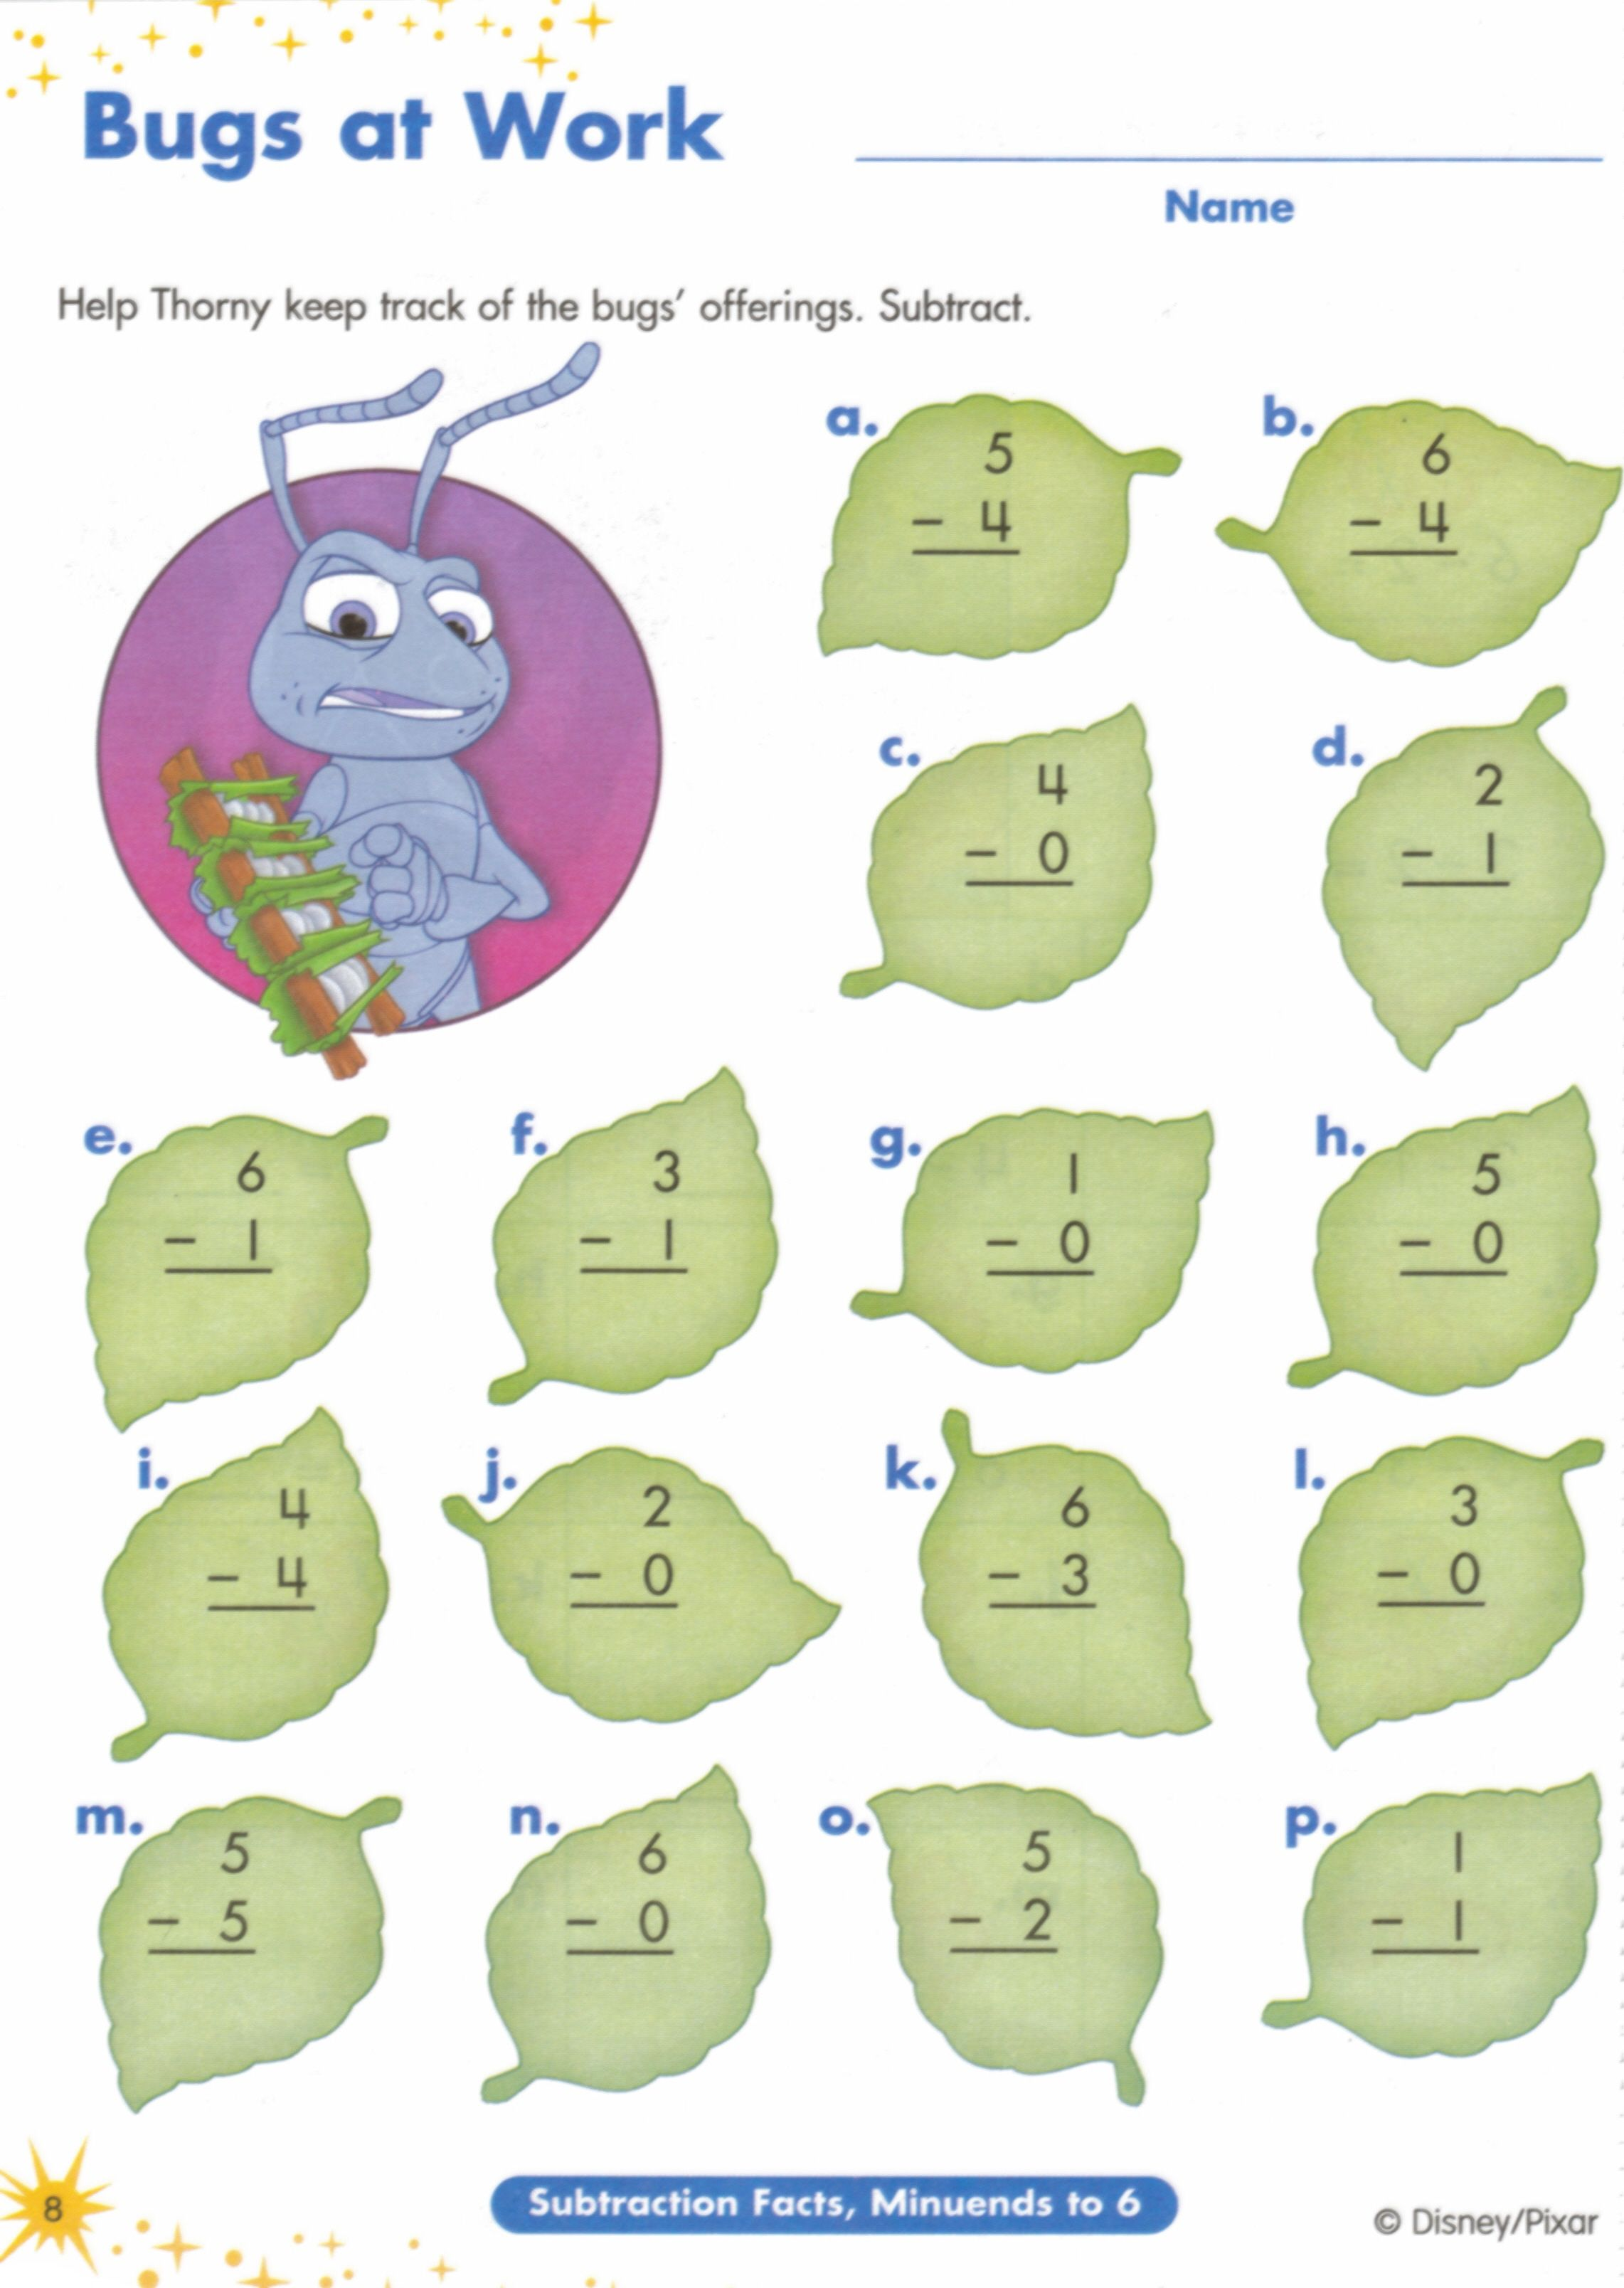 Aldiablosus  Surprising  Images About Worksheets On Pinterest  Fun Facts For Kids  With Marvelous  Images About Worksheets On Pinterest  Fun Facts For Kids Earth Day Worksheets And Jungles With Attractive Printable Worksheets Multiplication Also Bar Graph Worksheets For Th Grade In Addition Maths Worksheets Free And Maths Worksheet For Kids As Well As Free Time Worksheets For Kids Additionally    Times Tables Worksheets From Pinterestcom With Aldiablosus  Marvelous  Images About Worksheets On Pinterest  Fun Facts For Kids  With Attractive  Images About Worksheets On Pinterest  Fun Facts For Kids Earth Day Worksheets And Jungles And Surprising Printable Worksheets Multiplication Also Bar Graph Worksheets For Th Grade In Addition Maths Worksheets Free From Pinterestcom